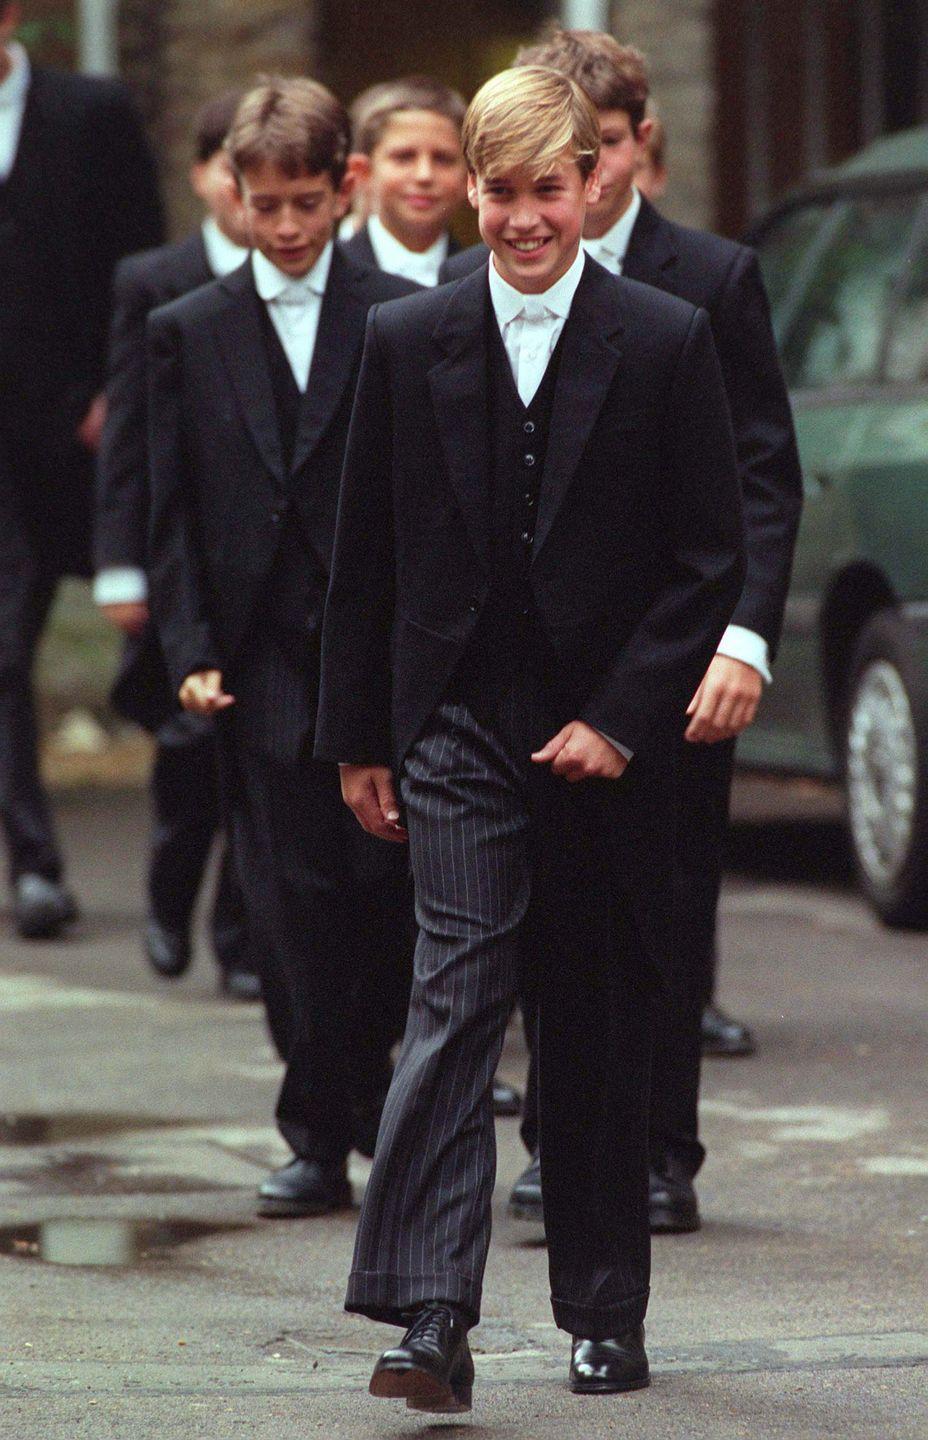 <p>Prince William looked proud as punch marching into his first day at Eton College on September 16, 1995. And didn't he look smart wearing the traditional fancy Eton uniform - a black tailcoat, black waistcoat, pinstriped trousers and white tie.</p>